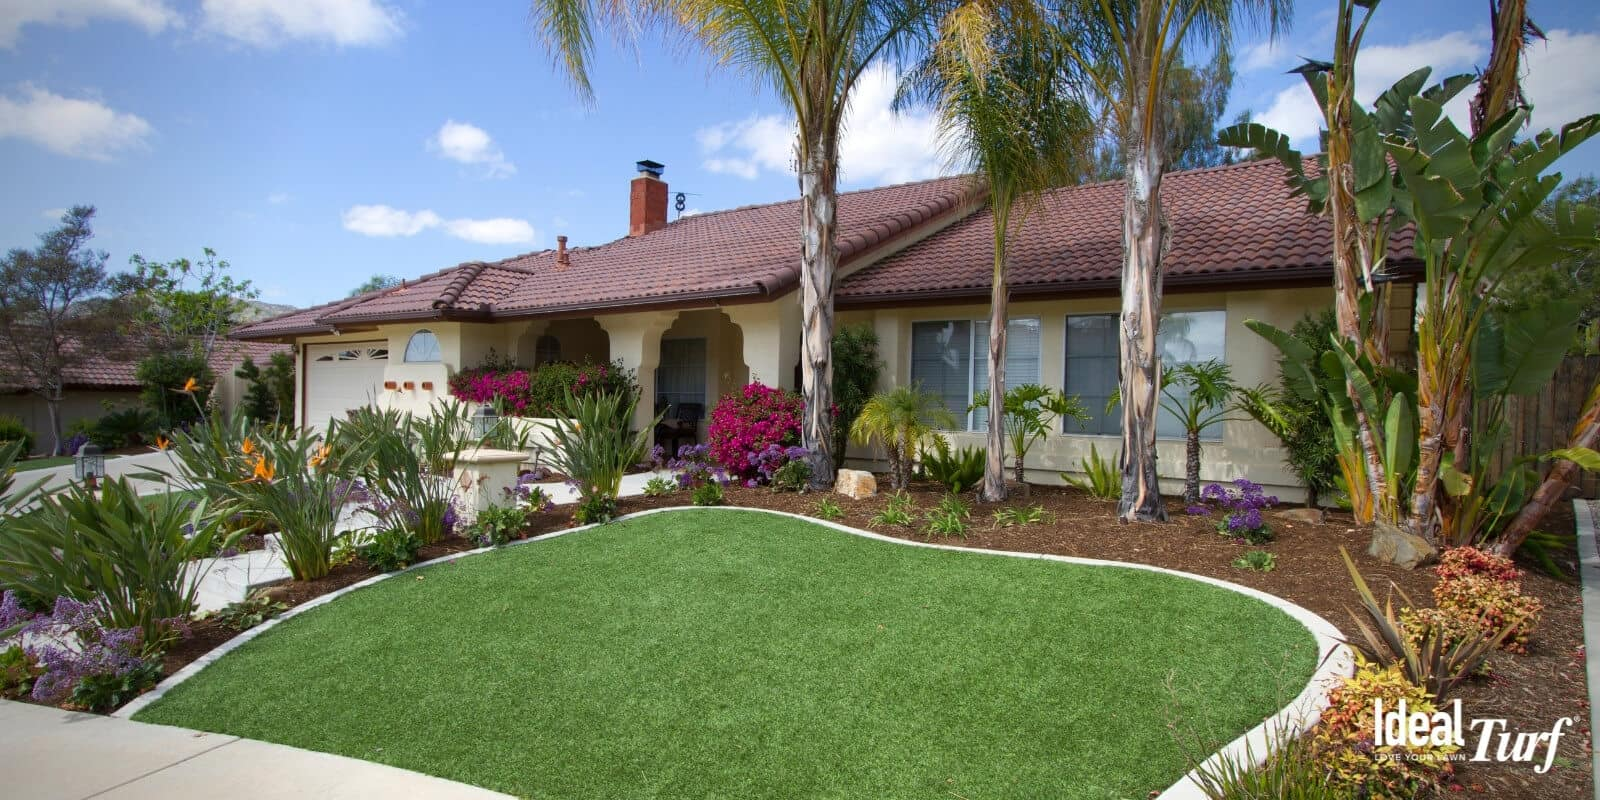 31. Will Artificial Grass Increase Property Value